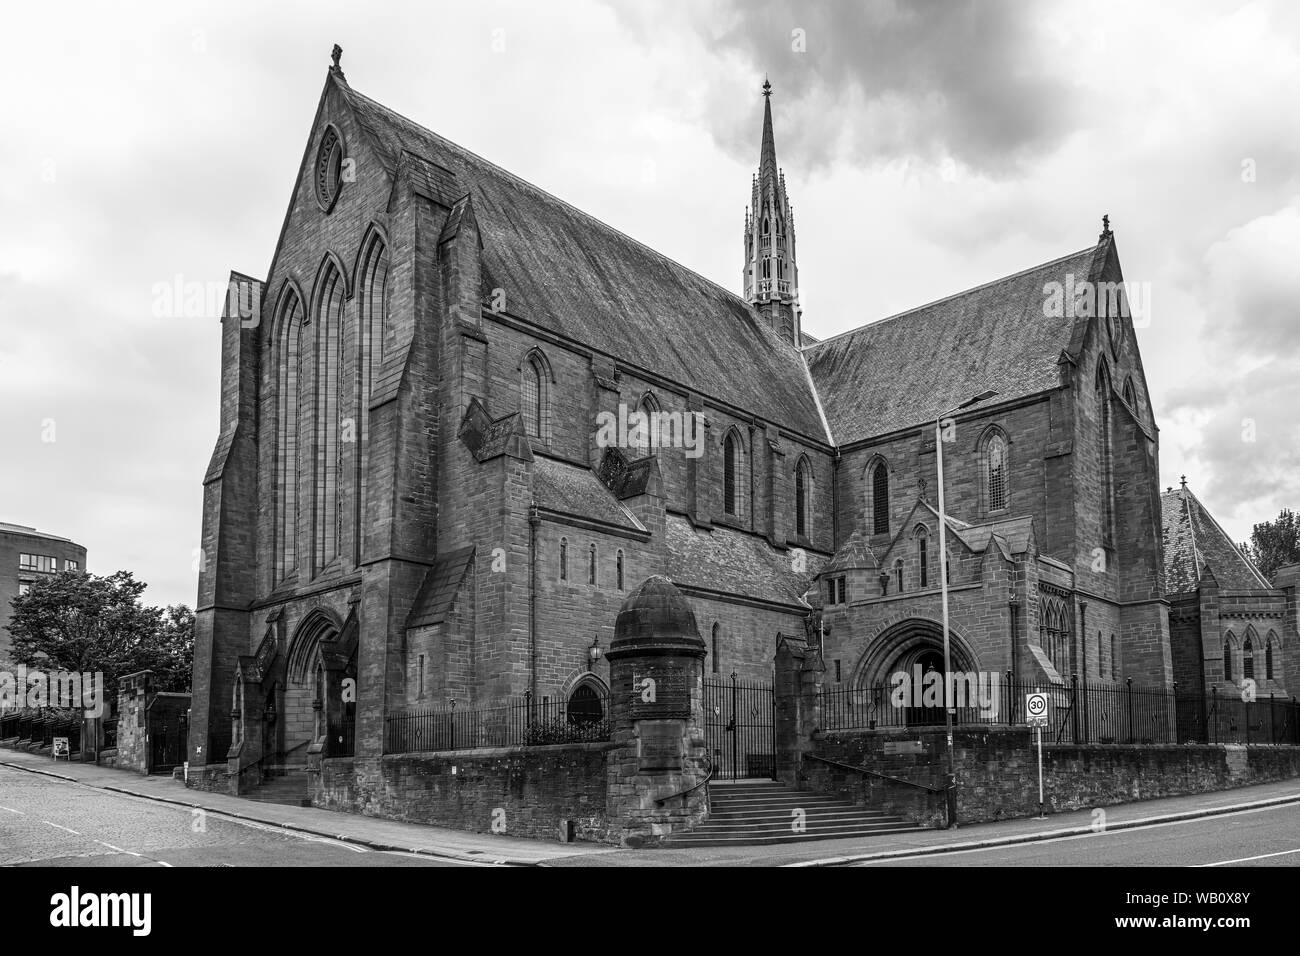 Glasgow, Scotland, UK - June 22, 2019: The Barony Parish Church in Castle Street at intersection with Rottenrow and Macleod Street Now University of S Stock Photo